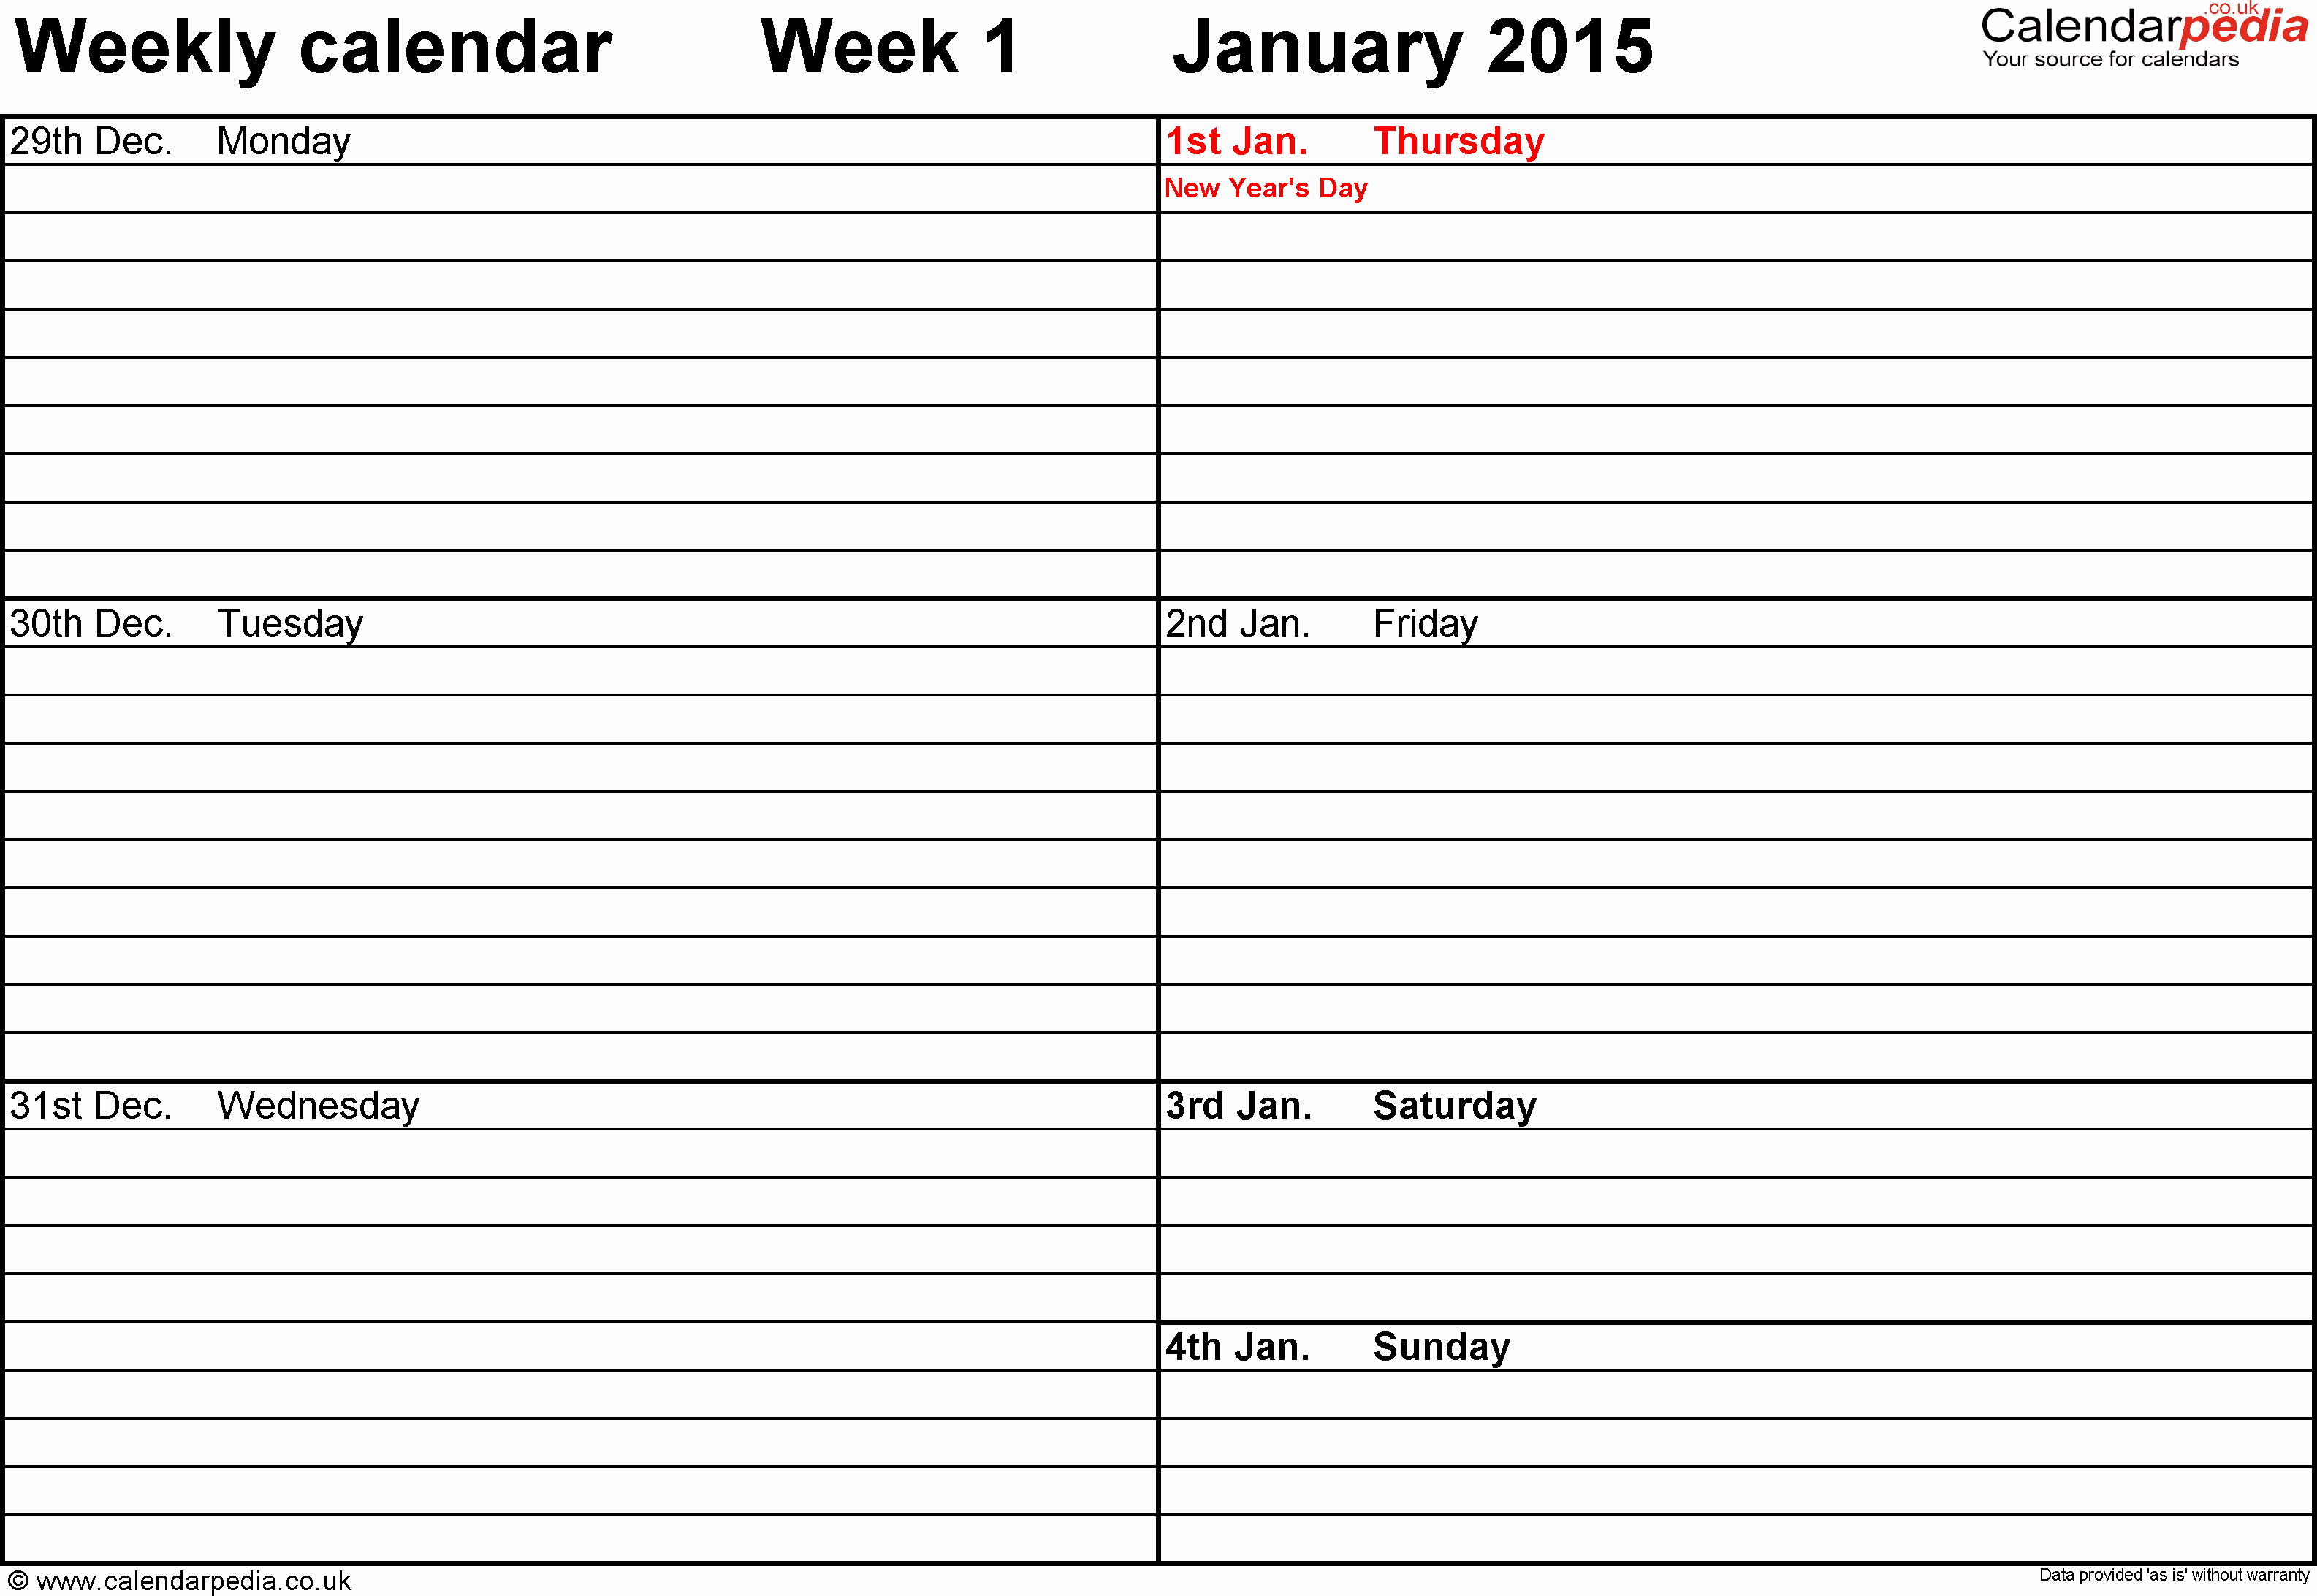 Weekly Calendar Template Excel Unique Weekly Calendar 2015 Uk Free Printable Templates for Excel